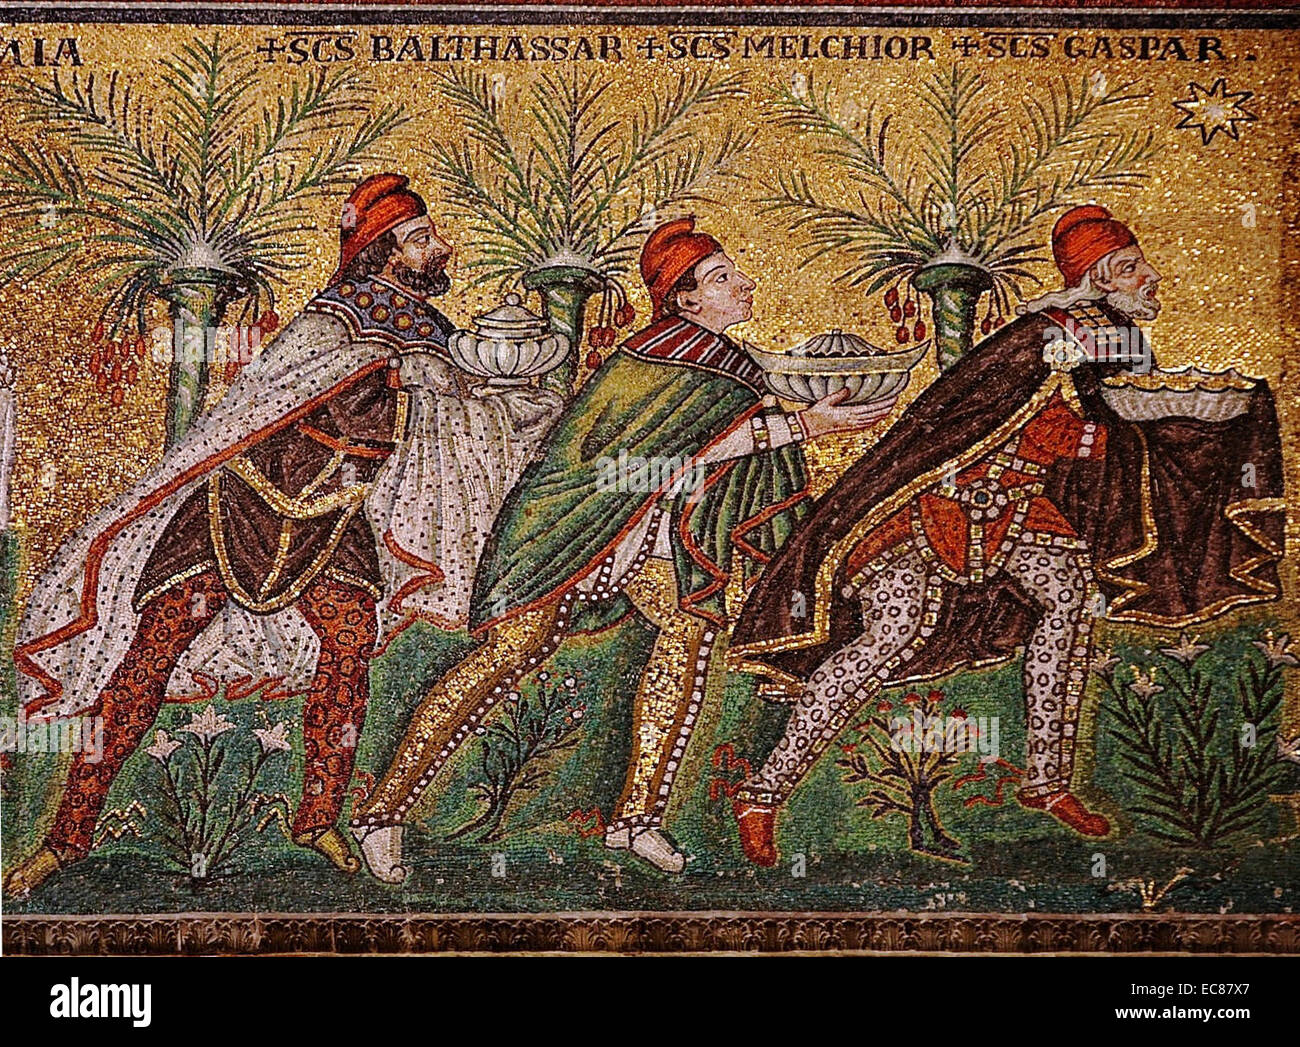 Mosaic of the Three Wise Men in the Basilica of Sant Apollinaire Nuovo, Ravenna, Italy. Dated 6th Century - Stock Image